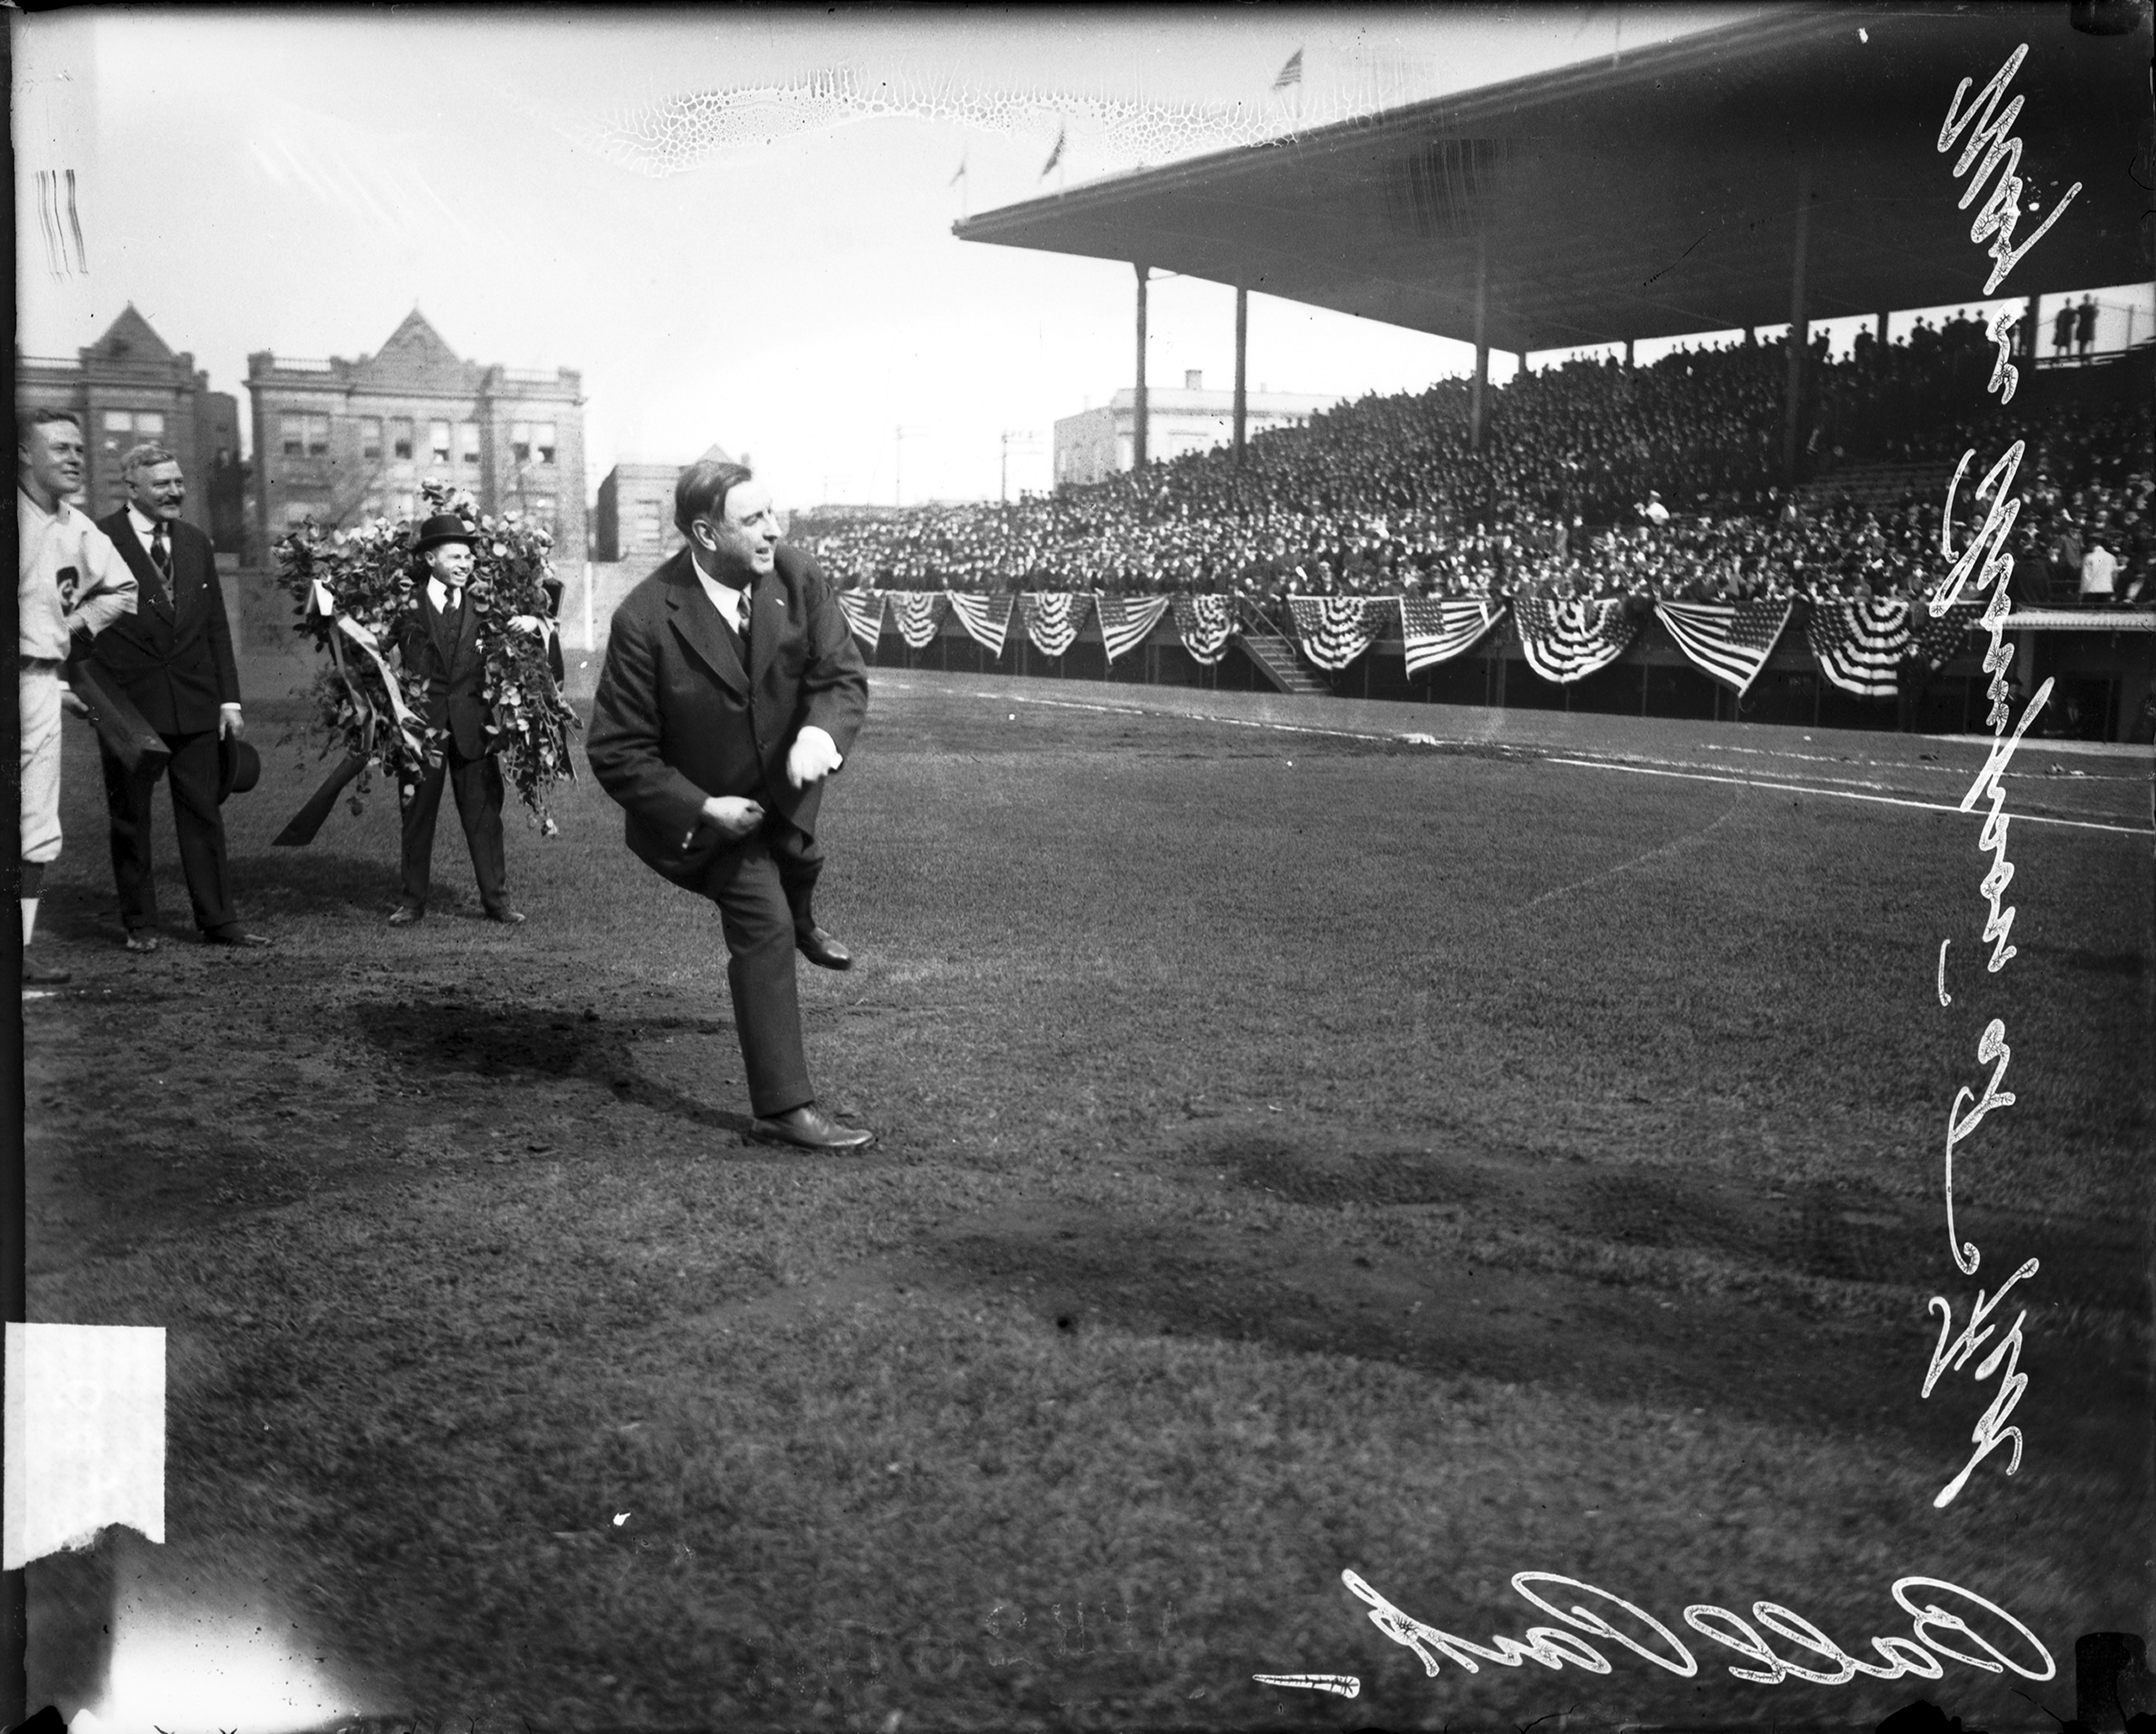 Chicago Mayor William Hale Thompson throwing first pitch at a Chicago Whales baseball game at Weeghman Park, Chicago, 1915.